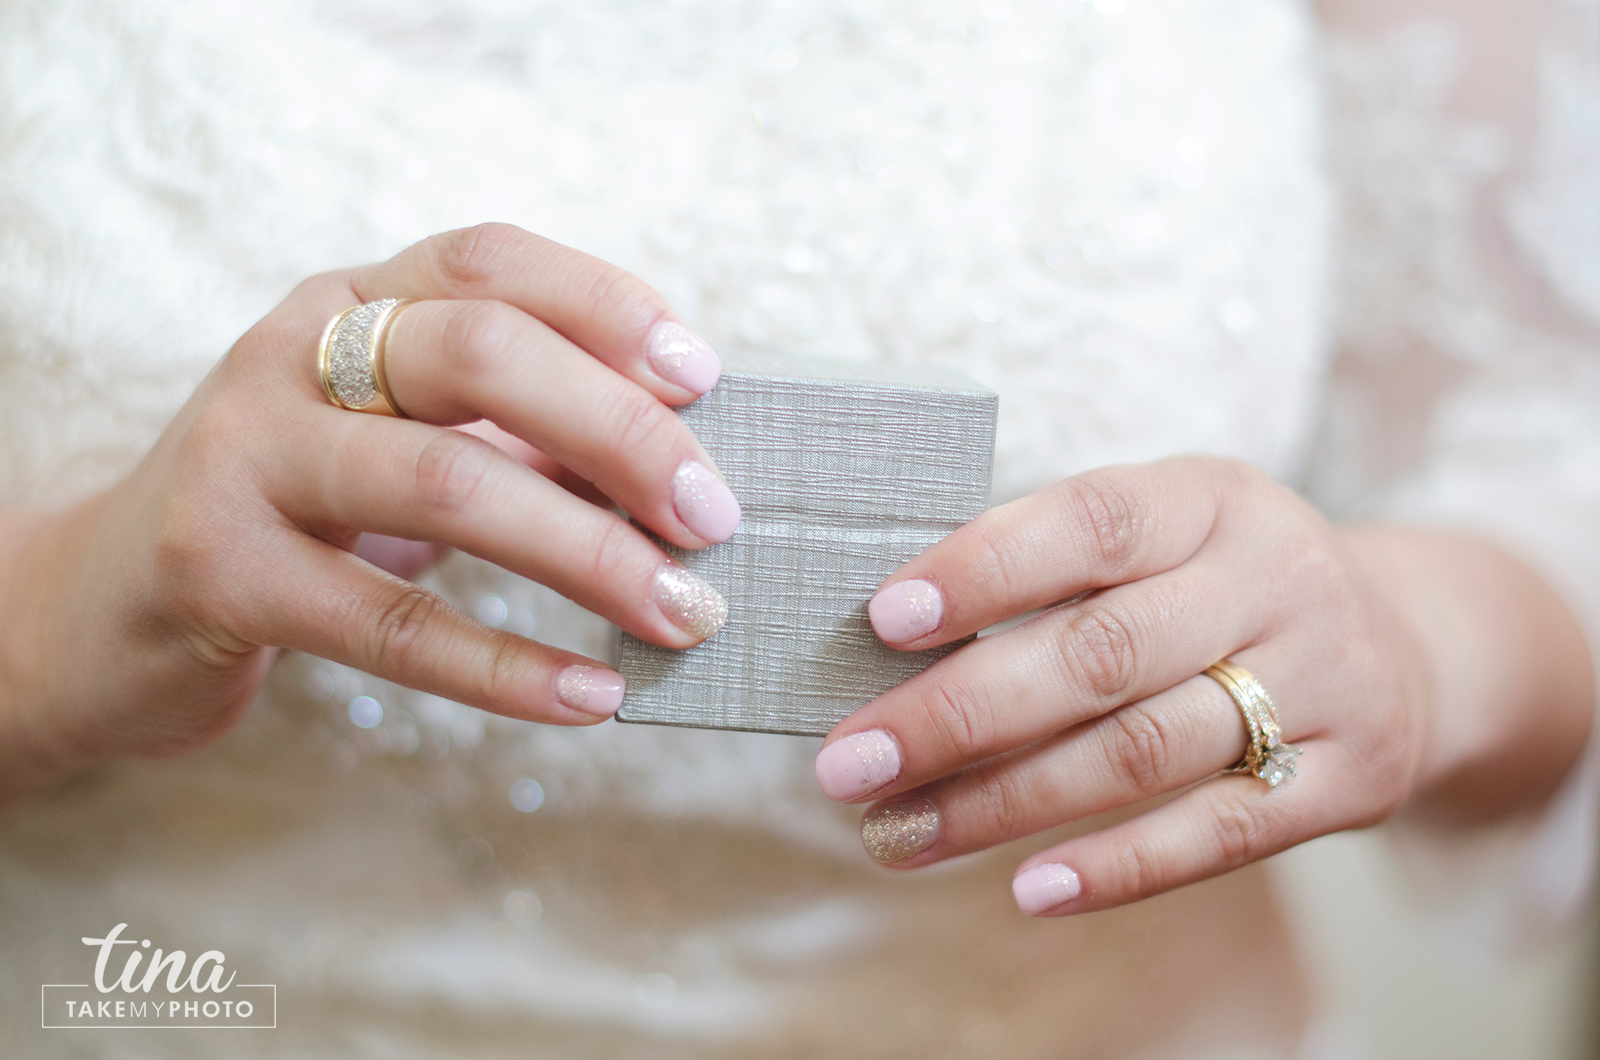 Wedding-day-gift-silver-box-manicure-bride-link-nails-wedding-photographer-brandermill-country-club-virginia